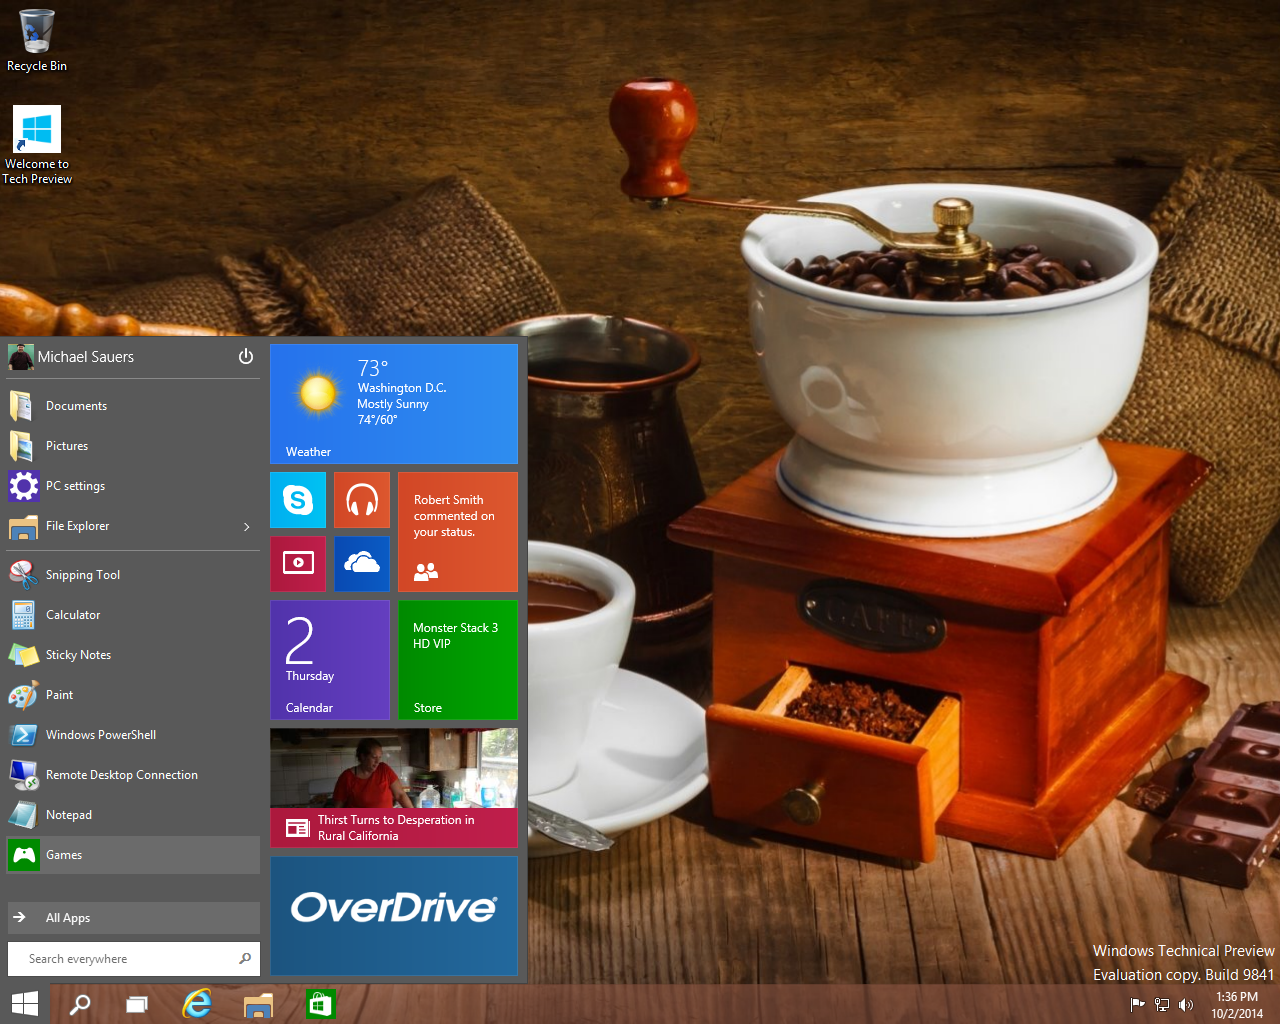 Windows 10 Technical Preview screenshots